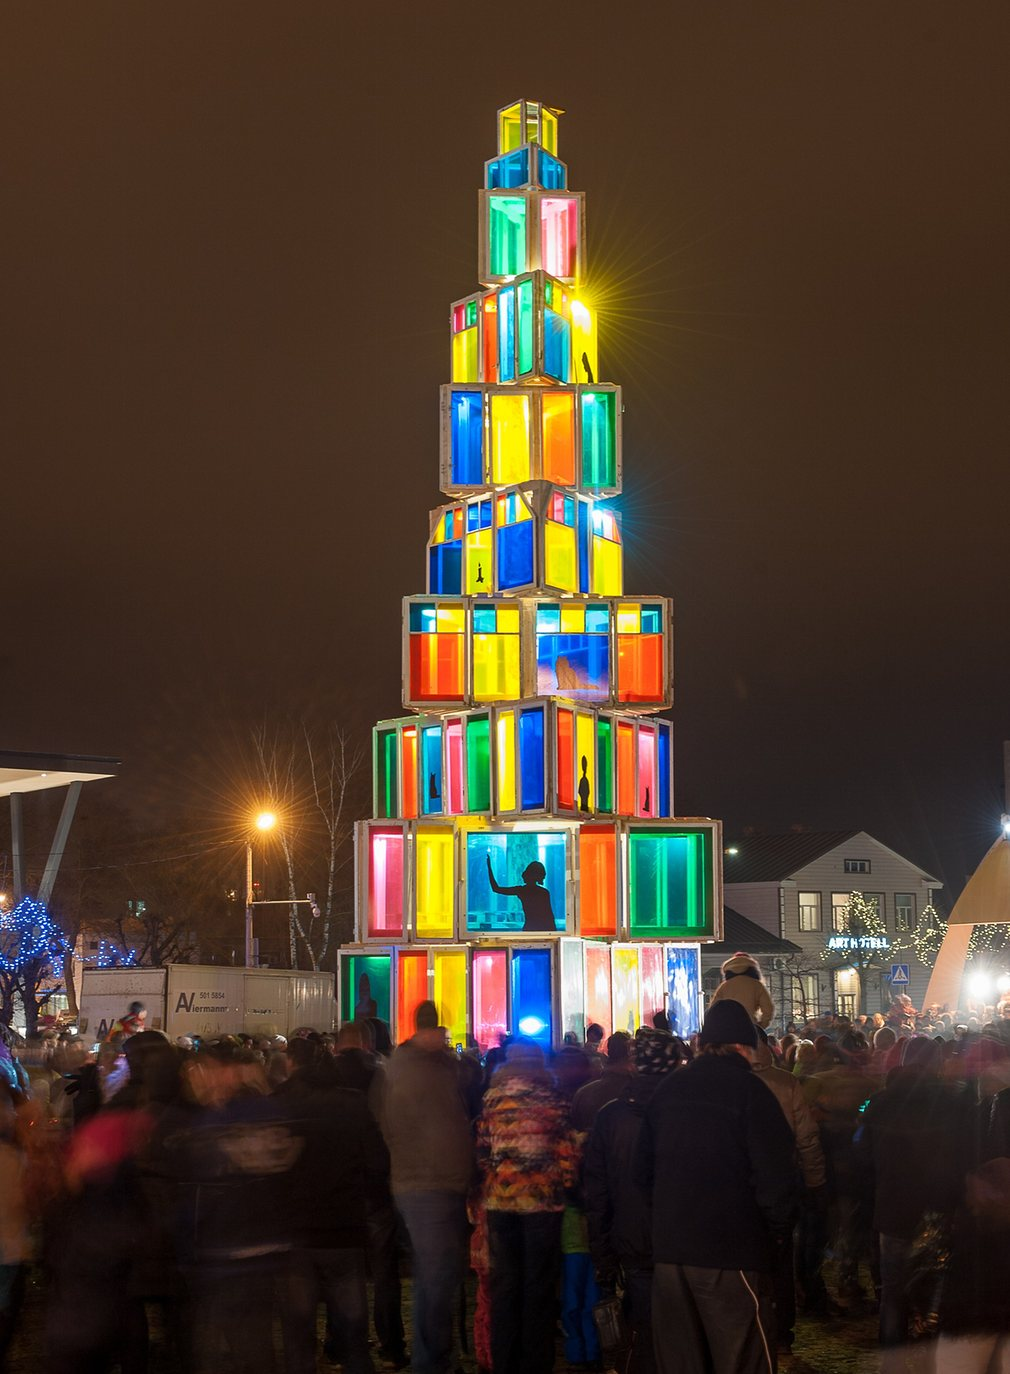 Christmas Tree made of recycled windows in Estonia